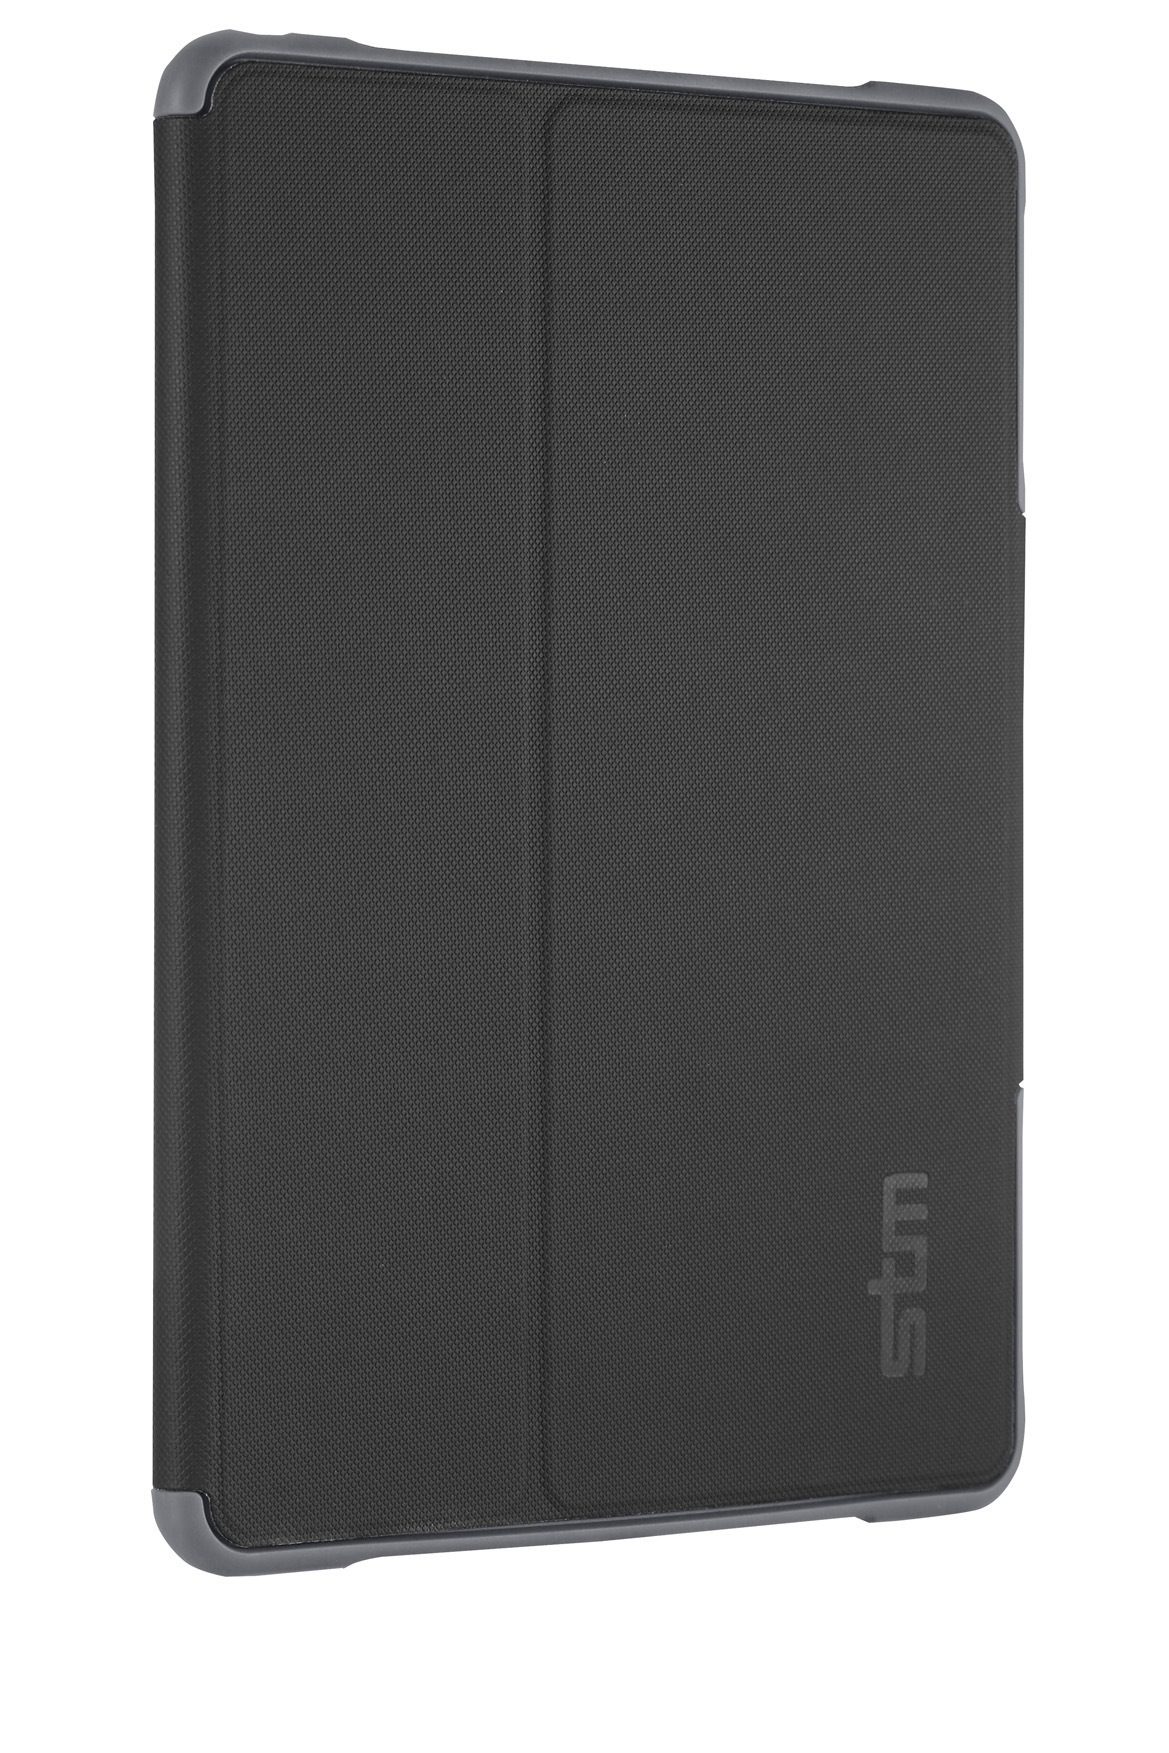 Stm Dux Case For Ipad Air 2 Black Myer Online